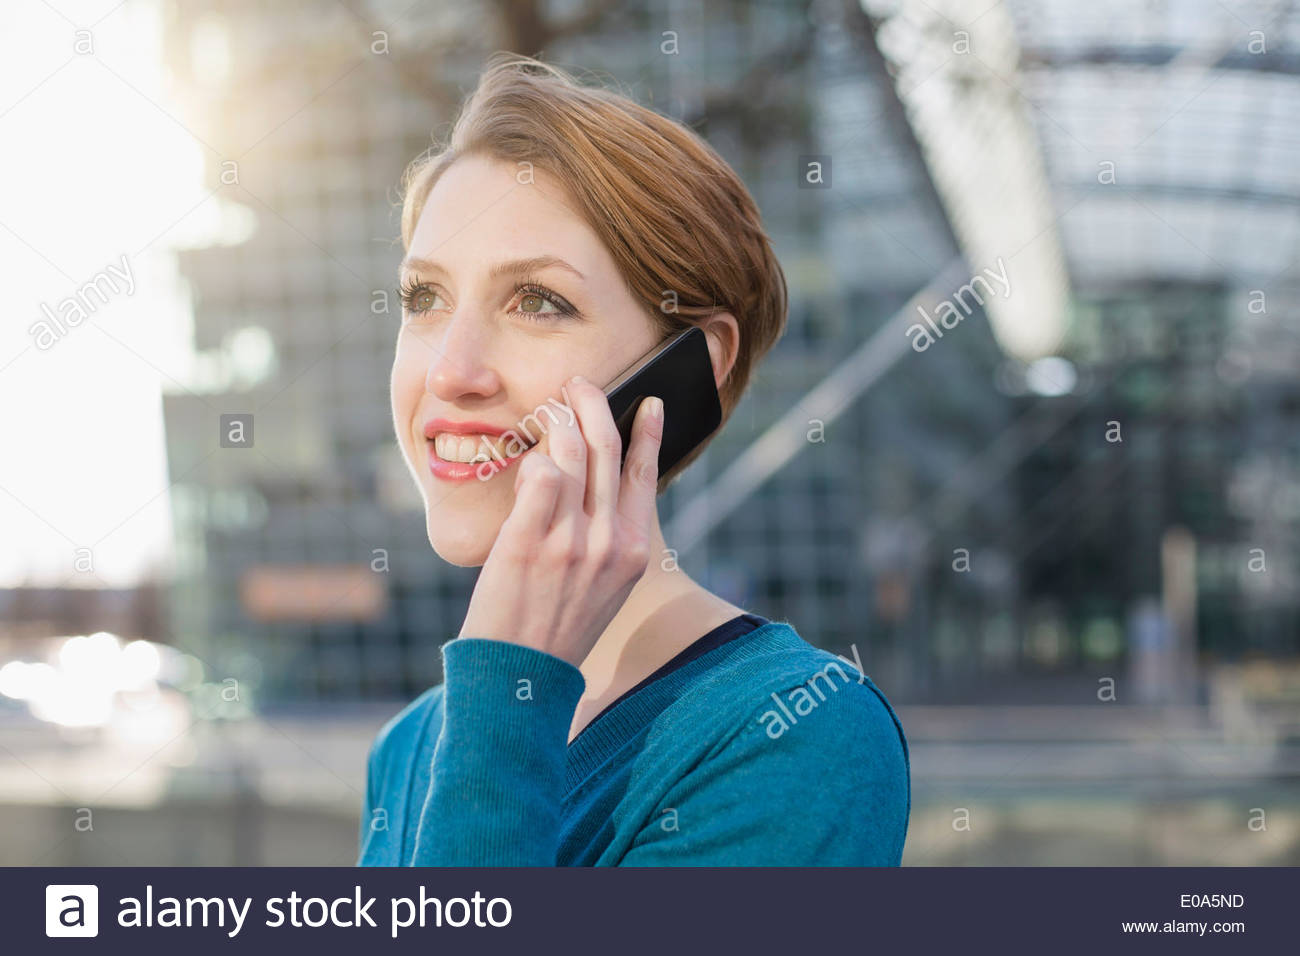 Young woman using cellular phone - Stock Image